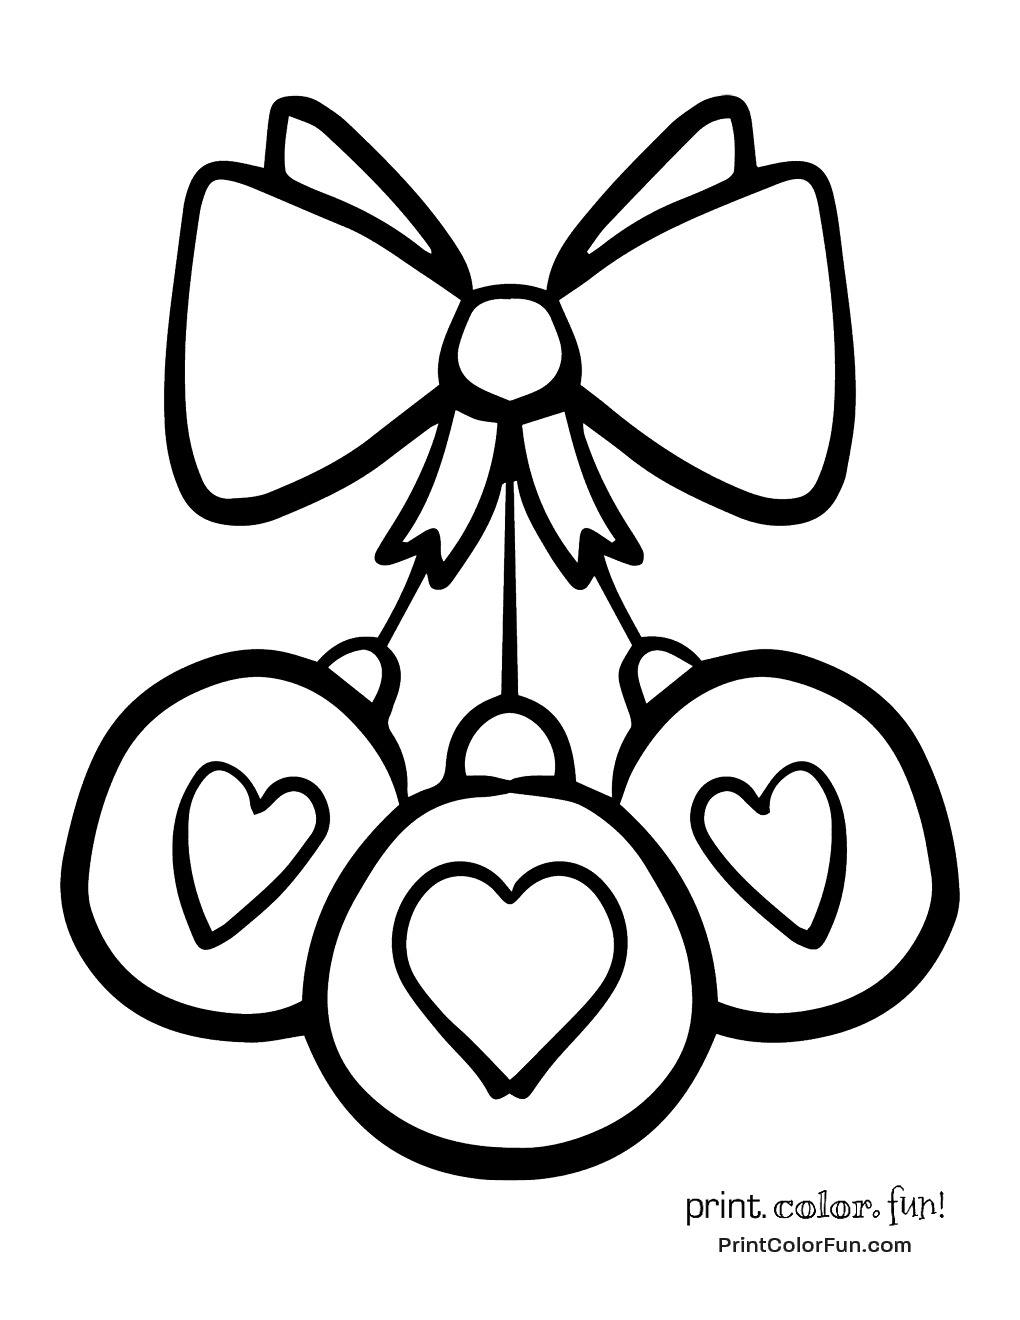 Three Hearts Christmas Ornament With Bow Coloring Page